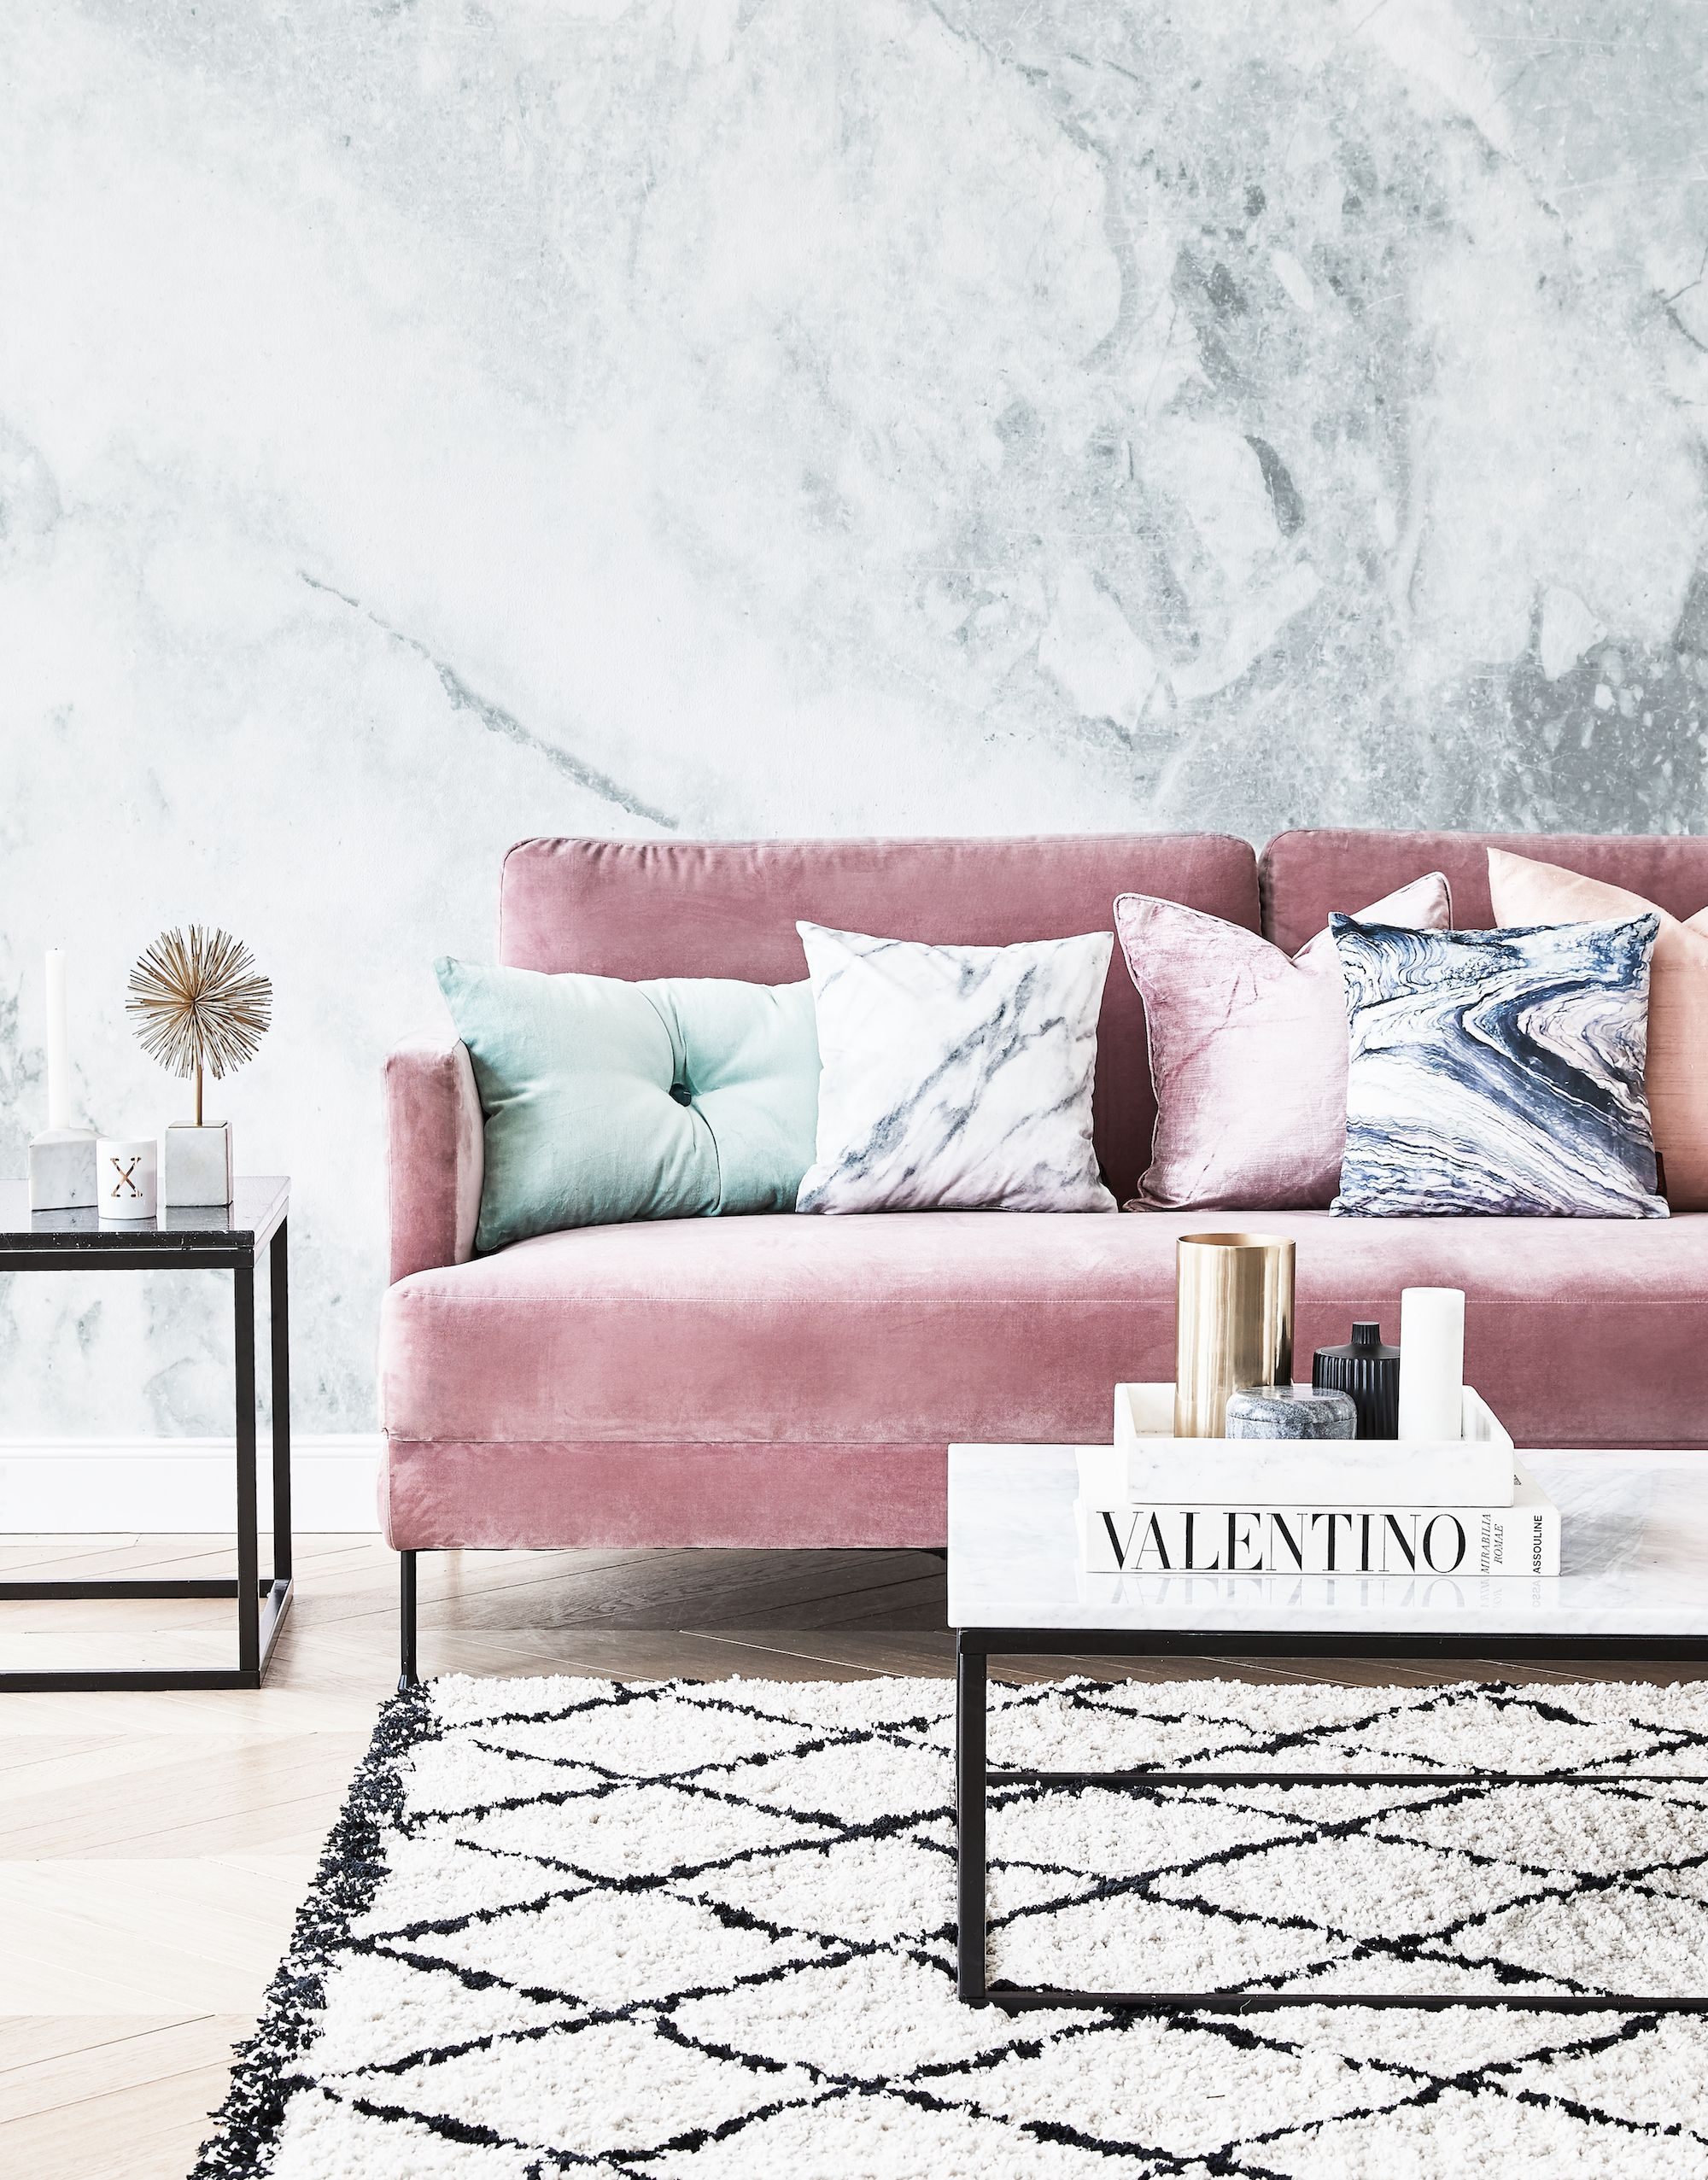 Rosa Sofa Pretty In Pink Unser Lieblings Samt Sofa In Rosa Hier Kombiniert